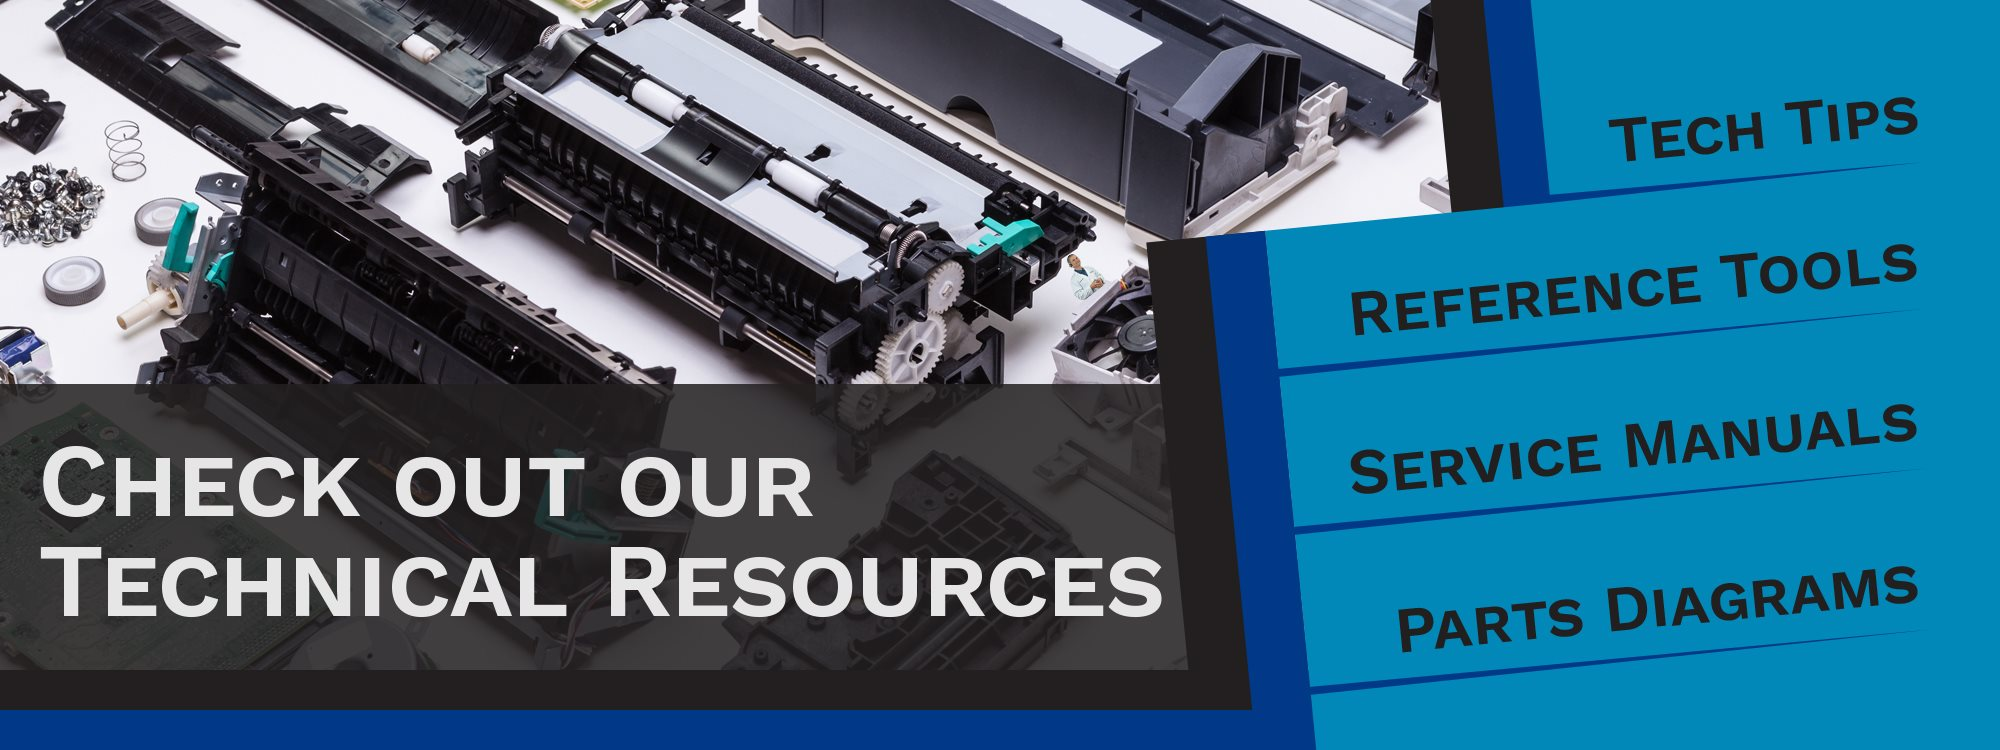 Check out our Technical Resources